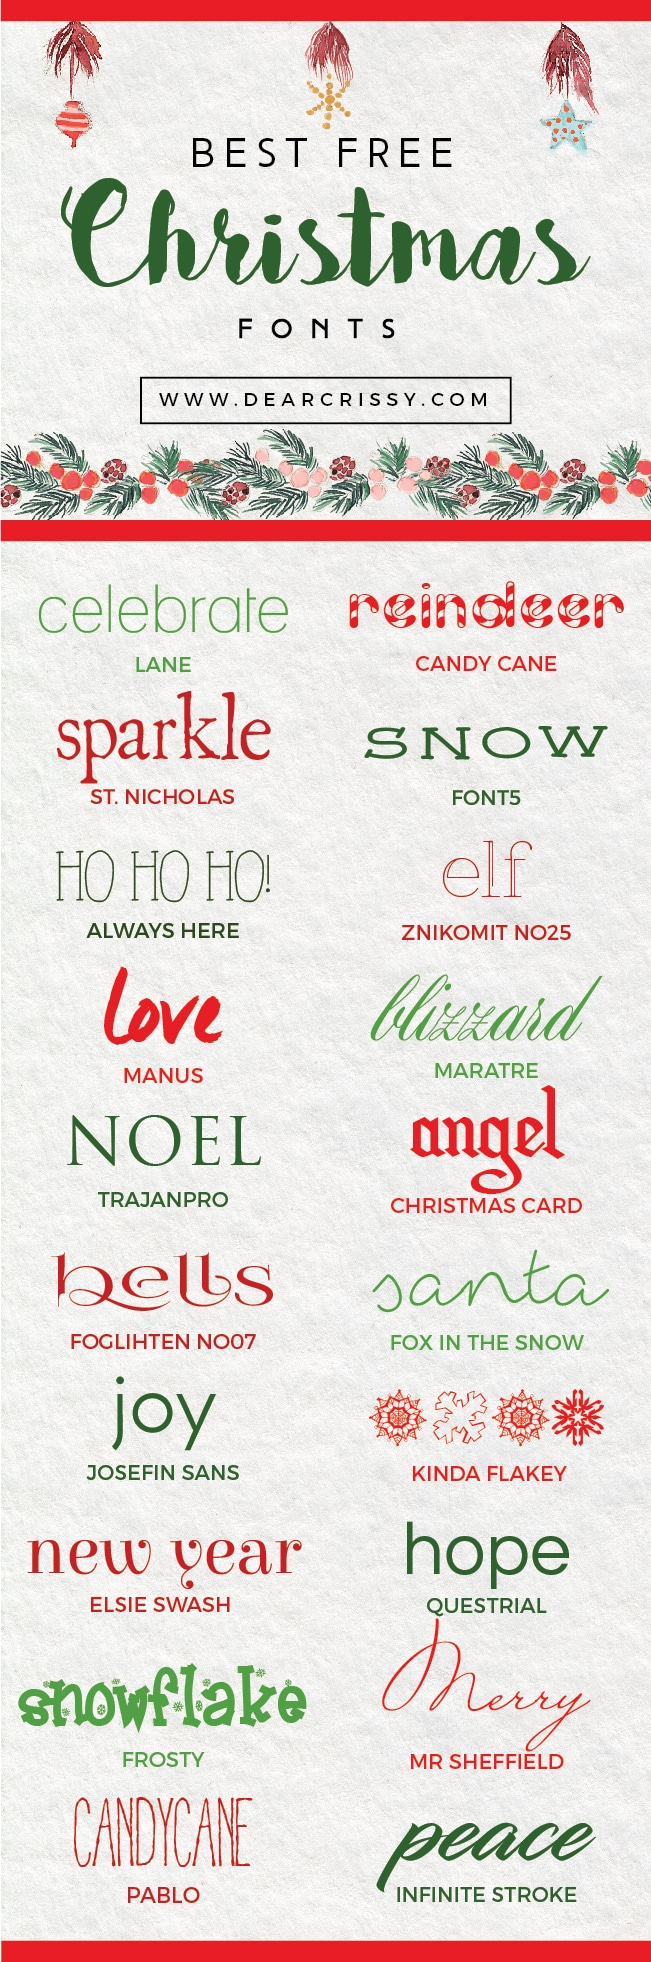 Best Christmas Fonts.Best Free Christmas Fonts Festive Free Holiday Fonts